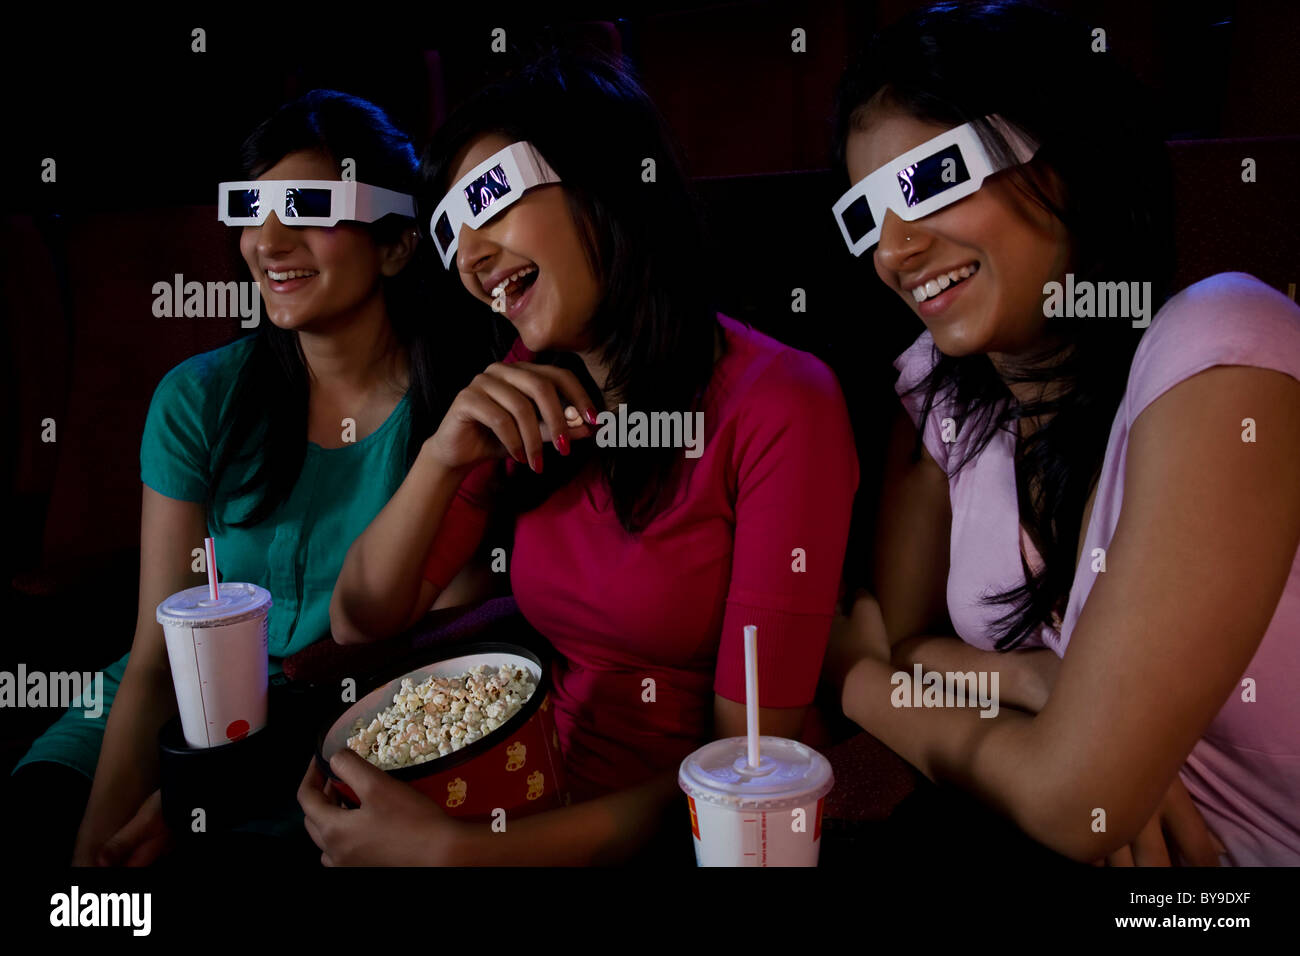 Girls watching a movie with 3-D glasses - Stock Image